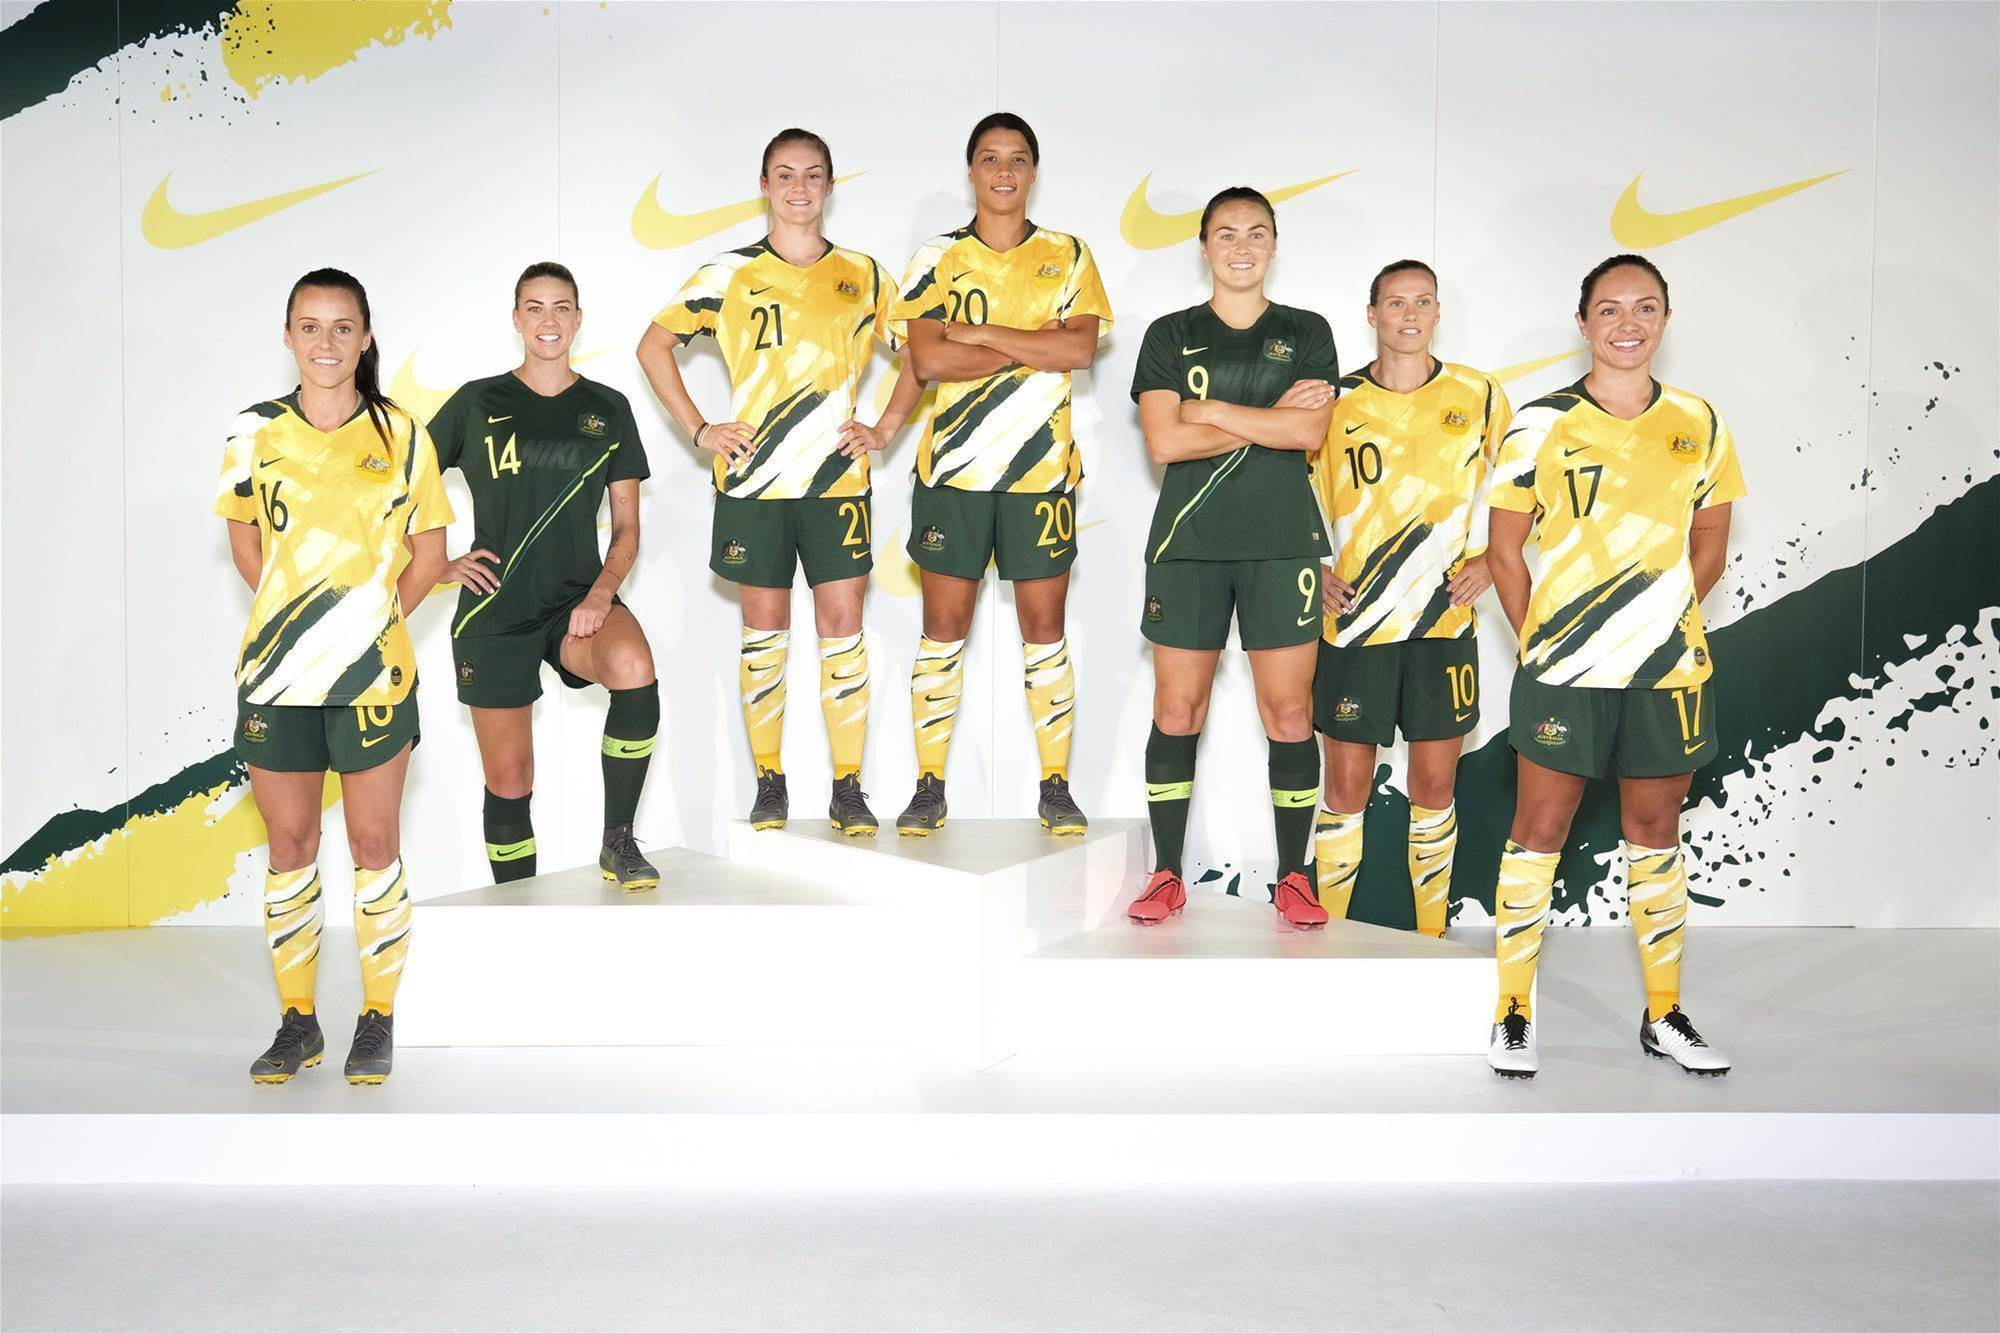 Revealed! The new Matildas kit - pic special